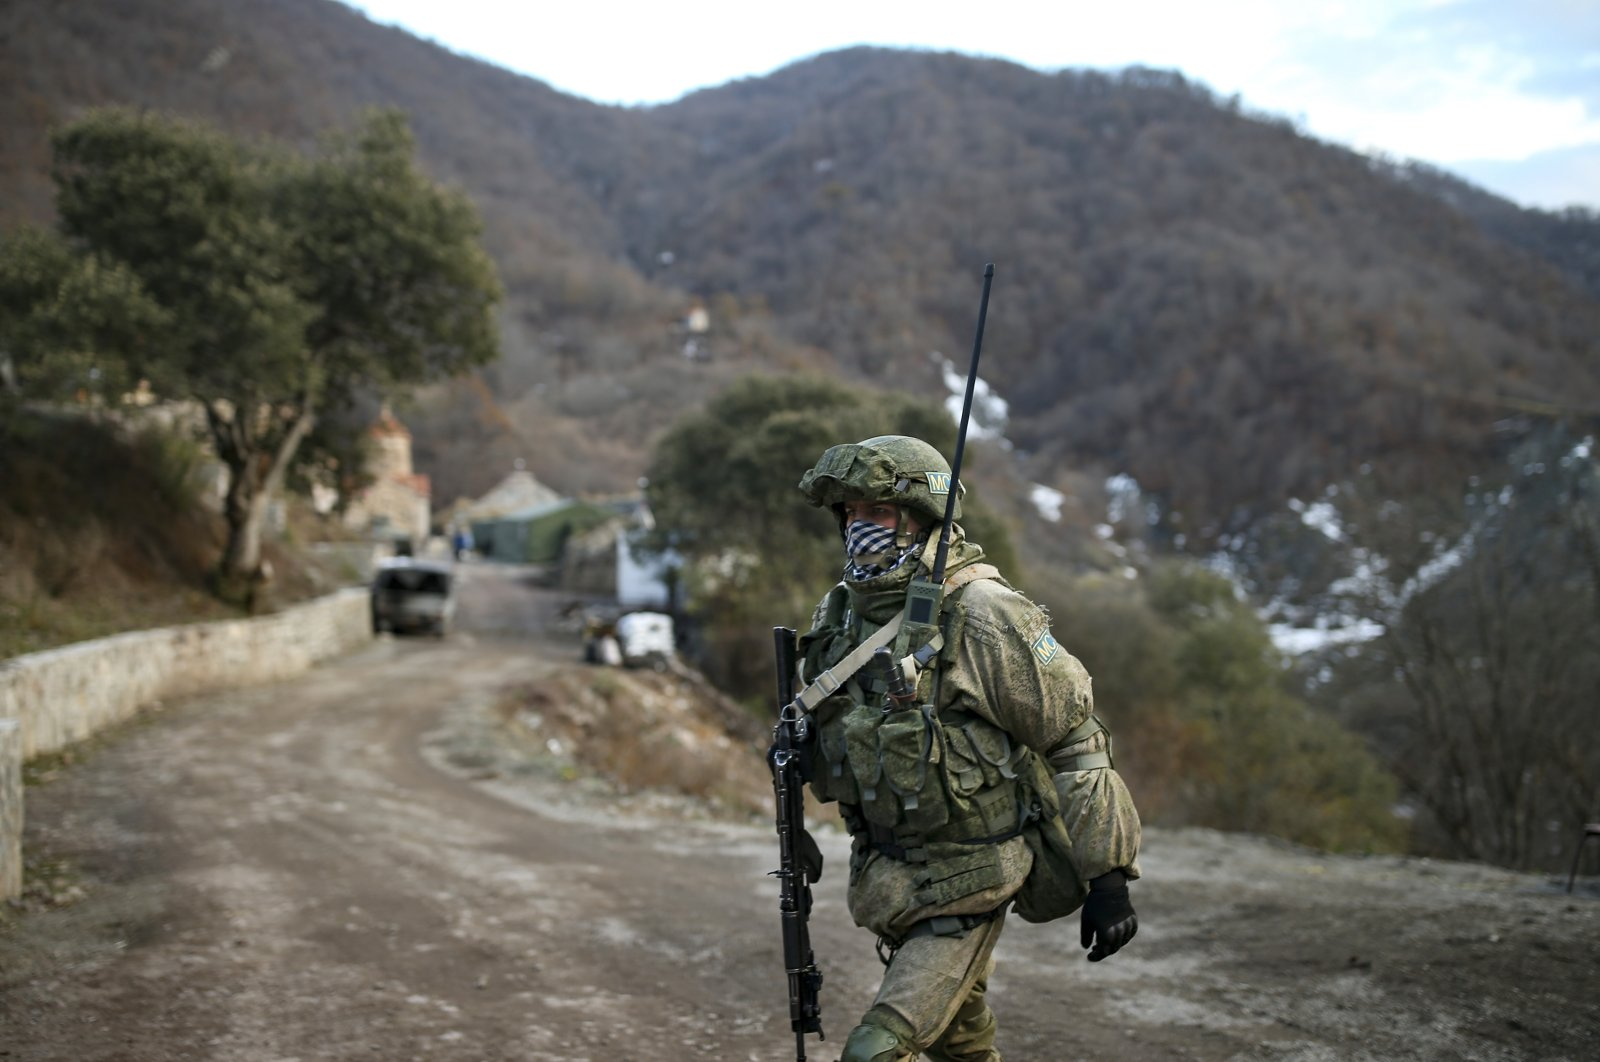 A Russian peacekeeper guards an entry point of Dadivank, an Armenian Apostolic Church monastery dating to the 9th century, after the transfer of the Kalbajar region back to Azerbaijan as part of a peace deal that required Armenian forces to cede Azerbaijani territories they previously occupied outside Nagorno-Karabakh, near Kalbajar, Azerbaijan, Wednesday, Dec. 2, 2020. (AP File Photo)